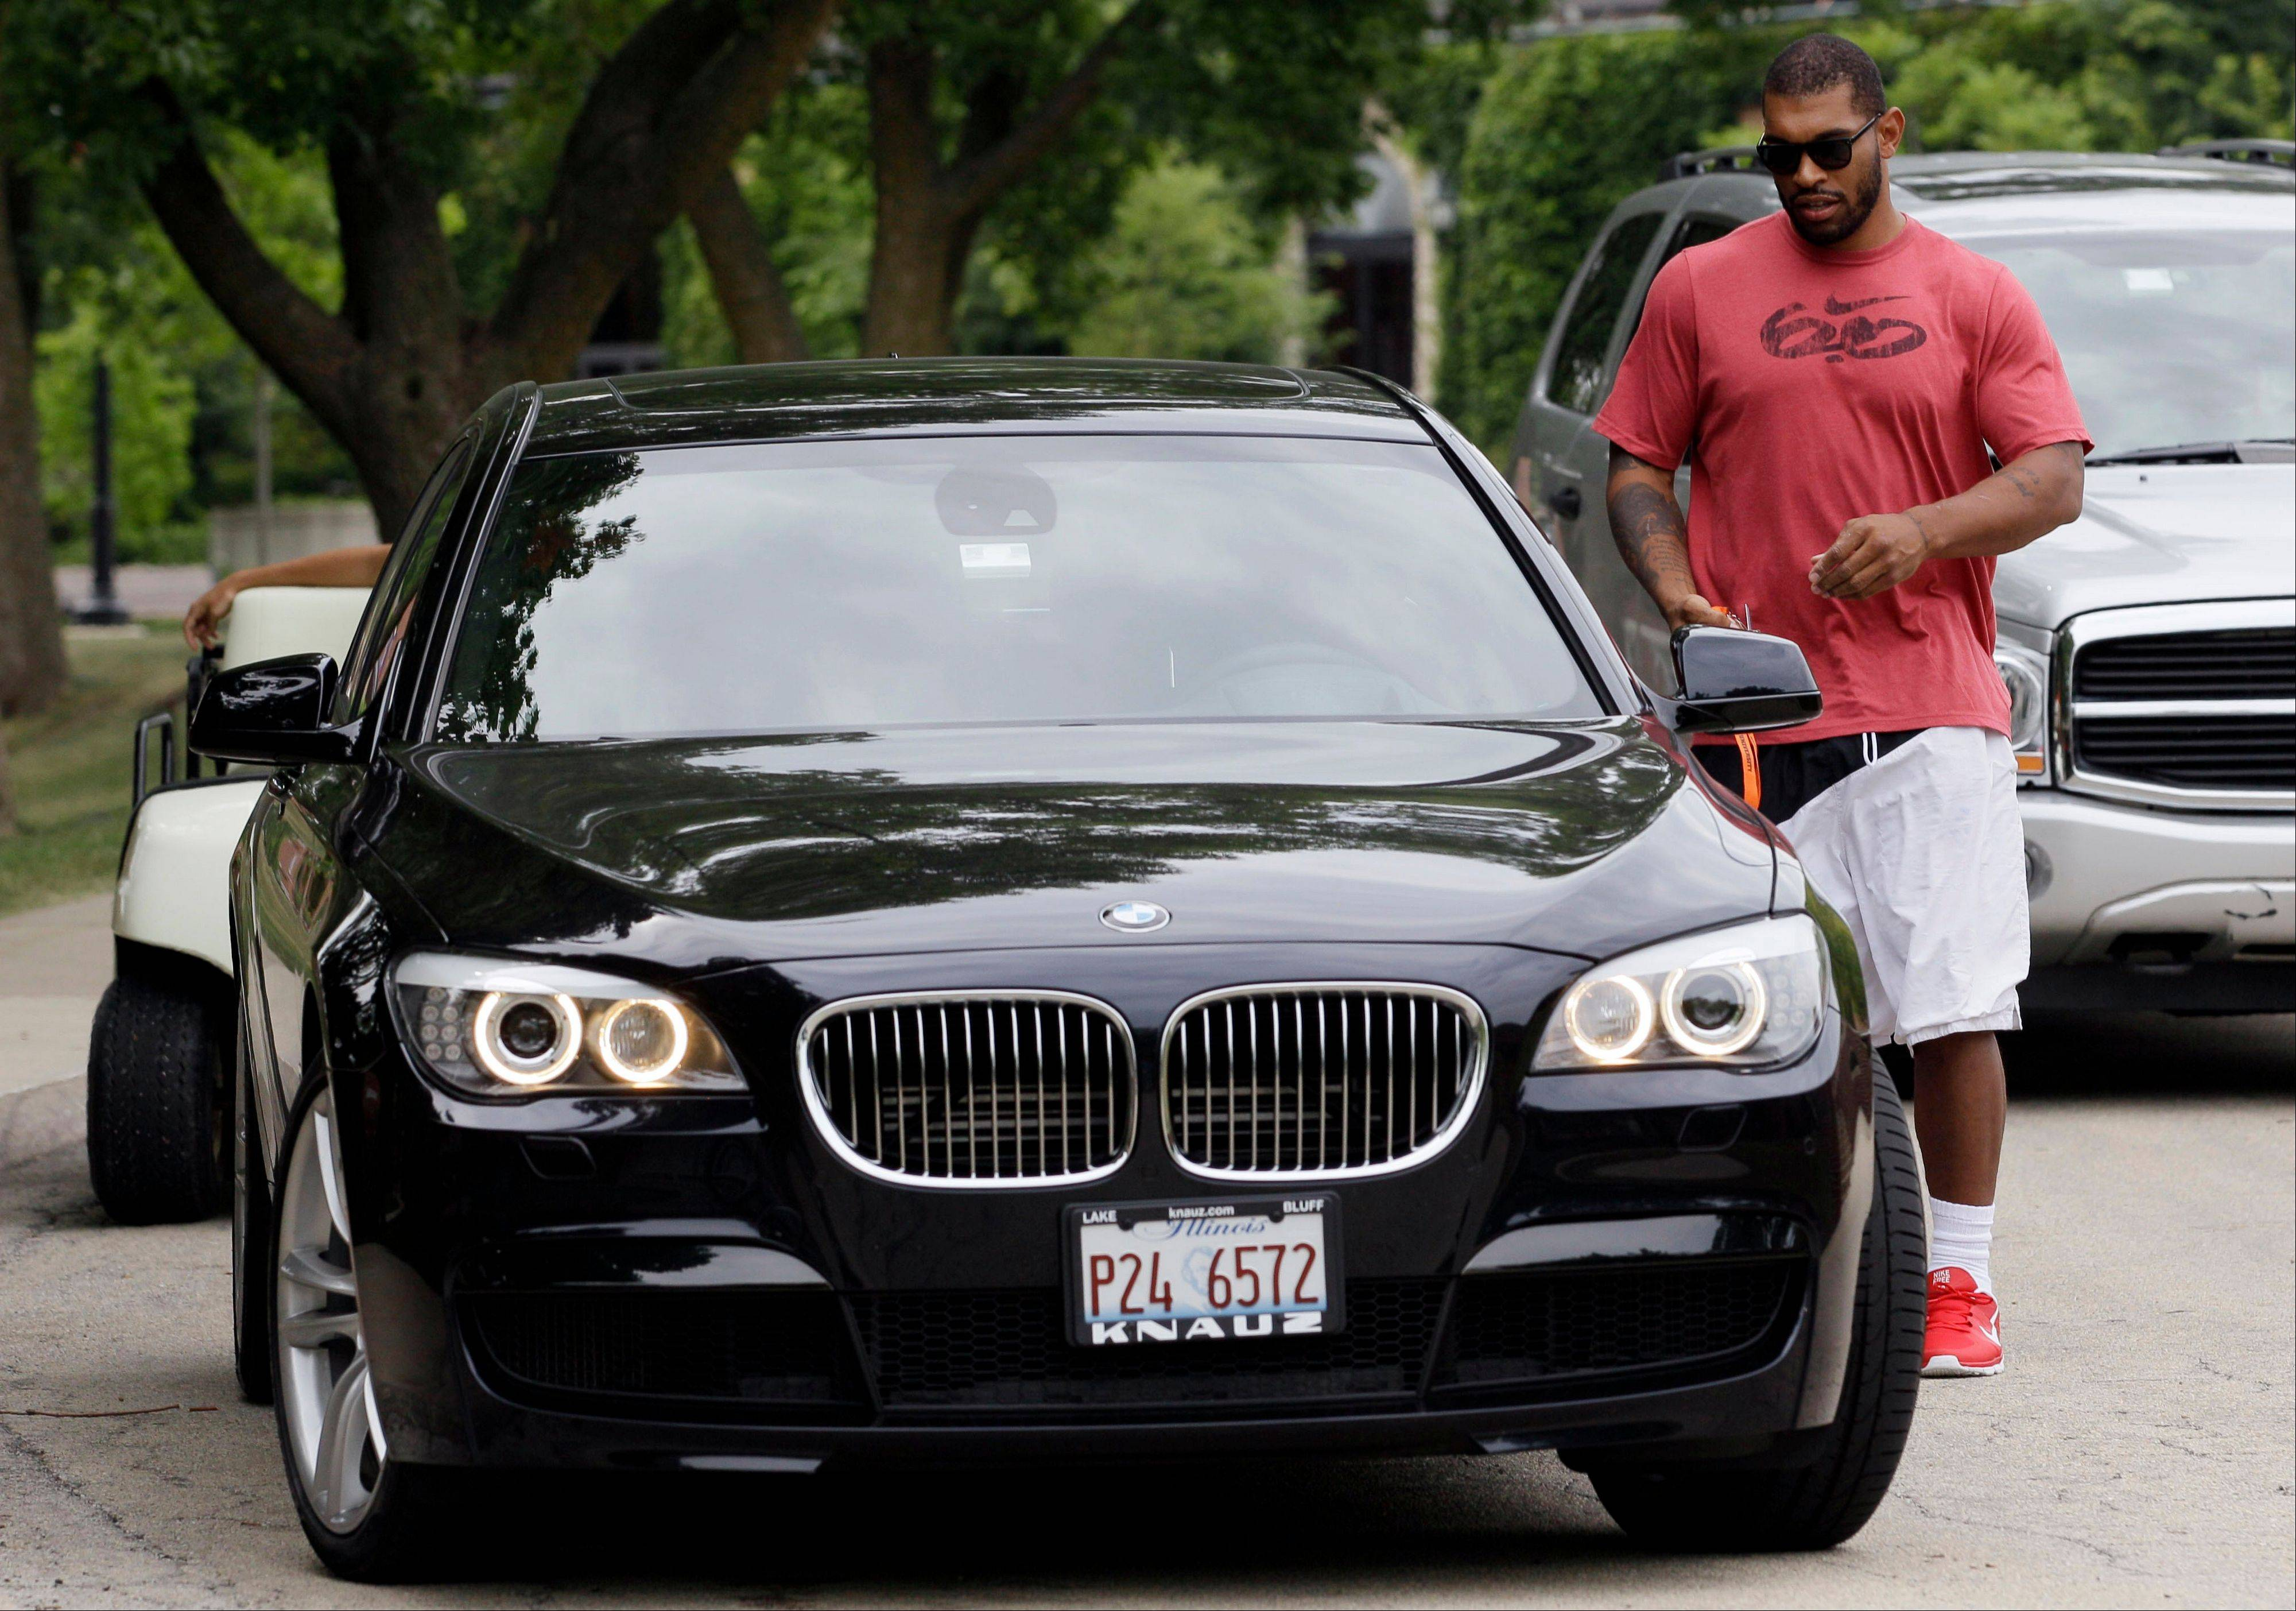 Chicago Bears defensive end Julius Peppers arrives at NFL football training camp at Olivet Nazarene University in Bourbonnais, Ill., Tuesday, July 24, 2012.